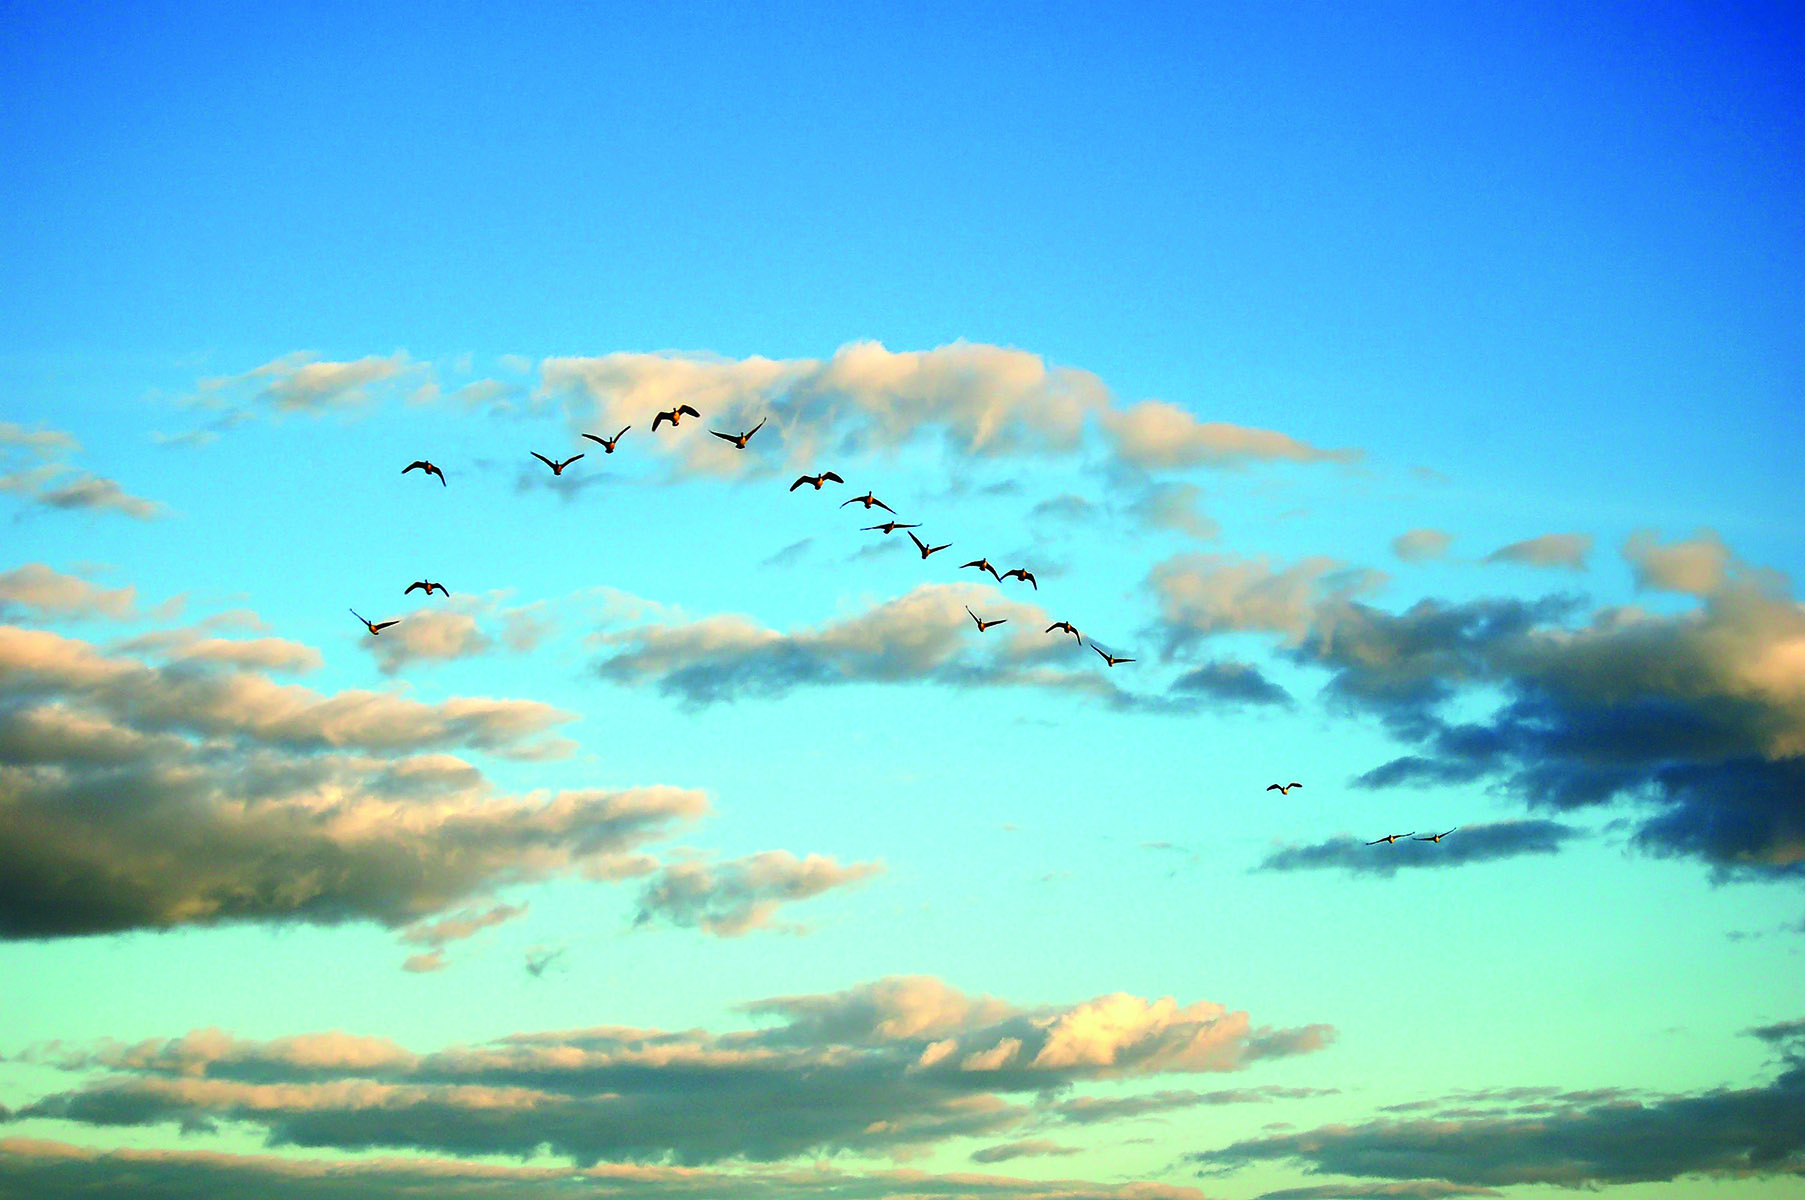 Hunting season wouldn't be the same without the annual migration of Canada Geese.